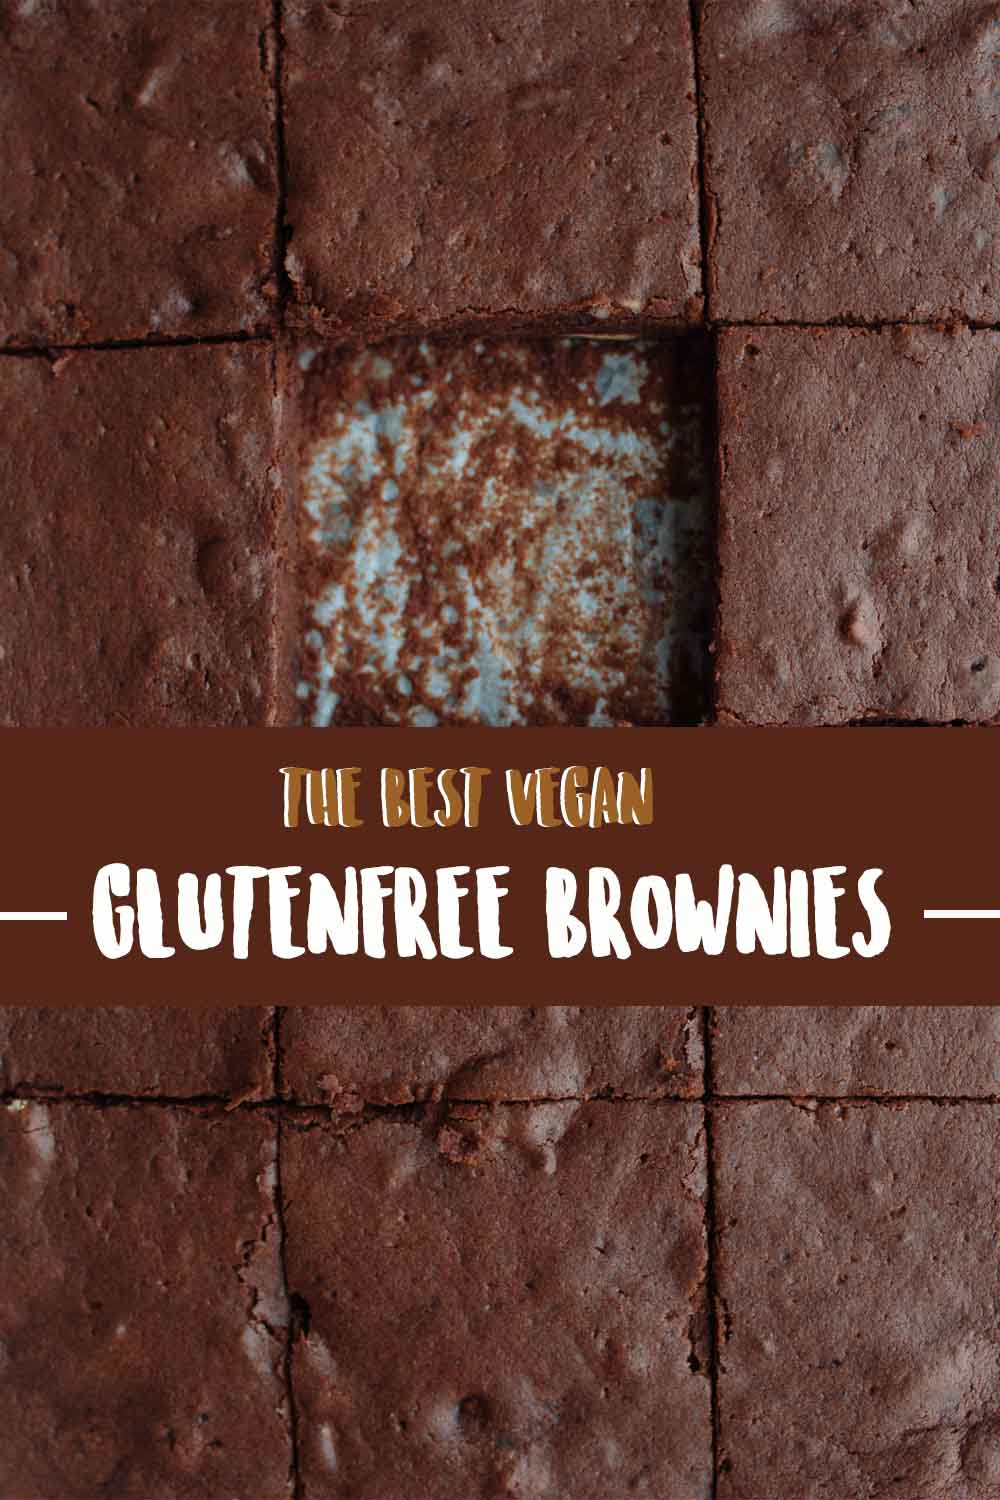 The BEST vegan gluten-free Brownies